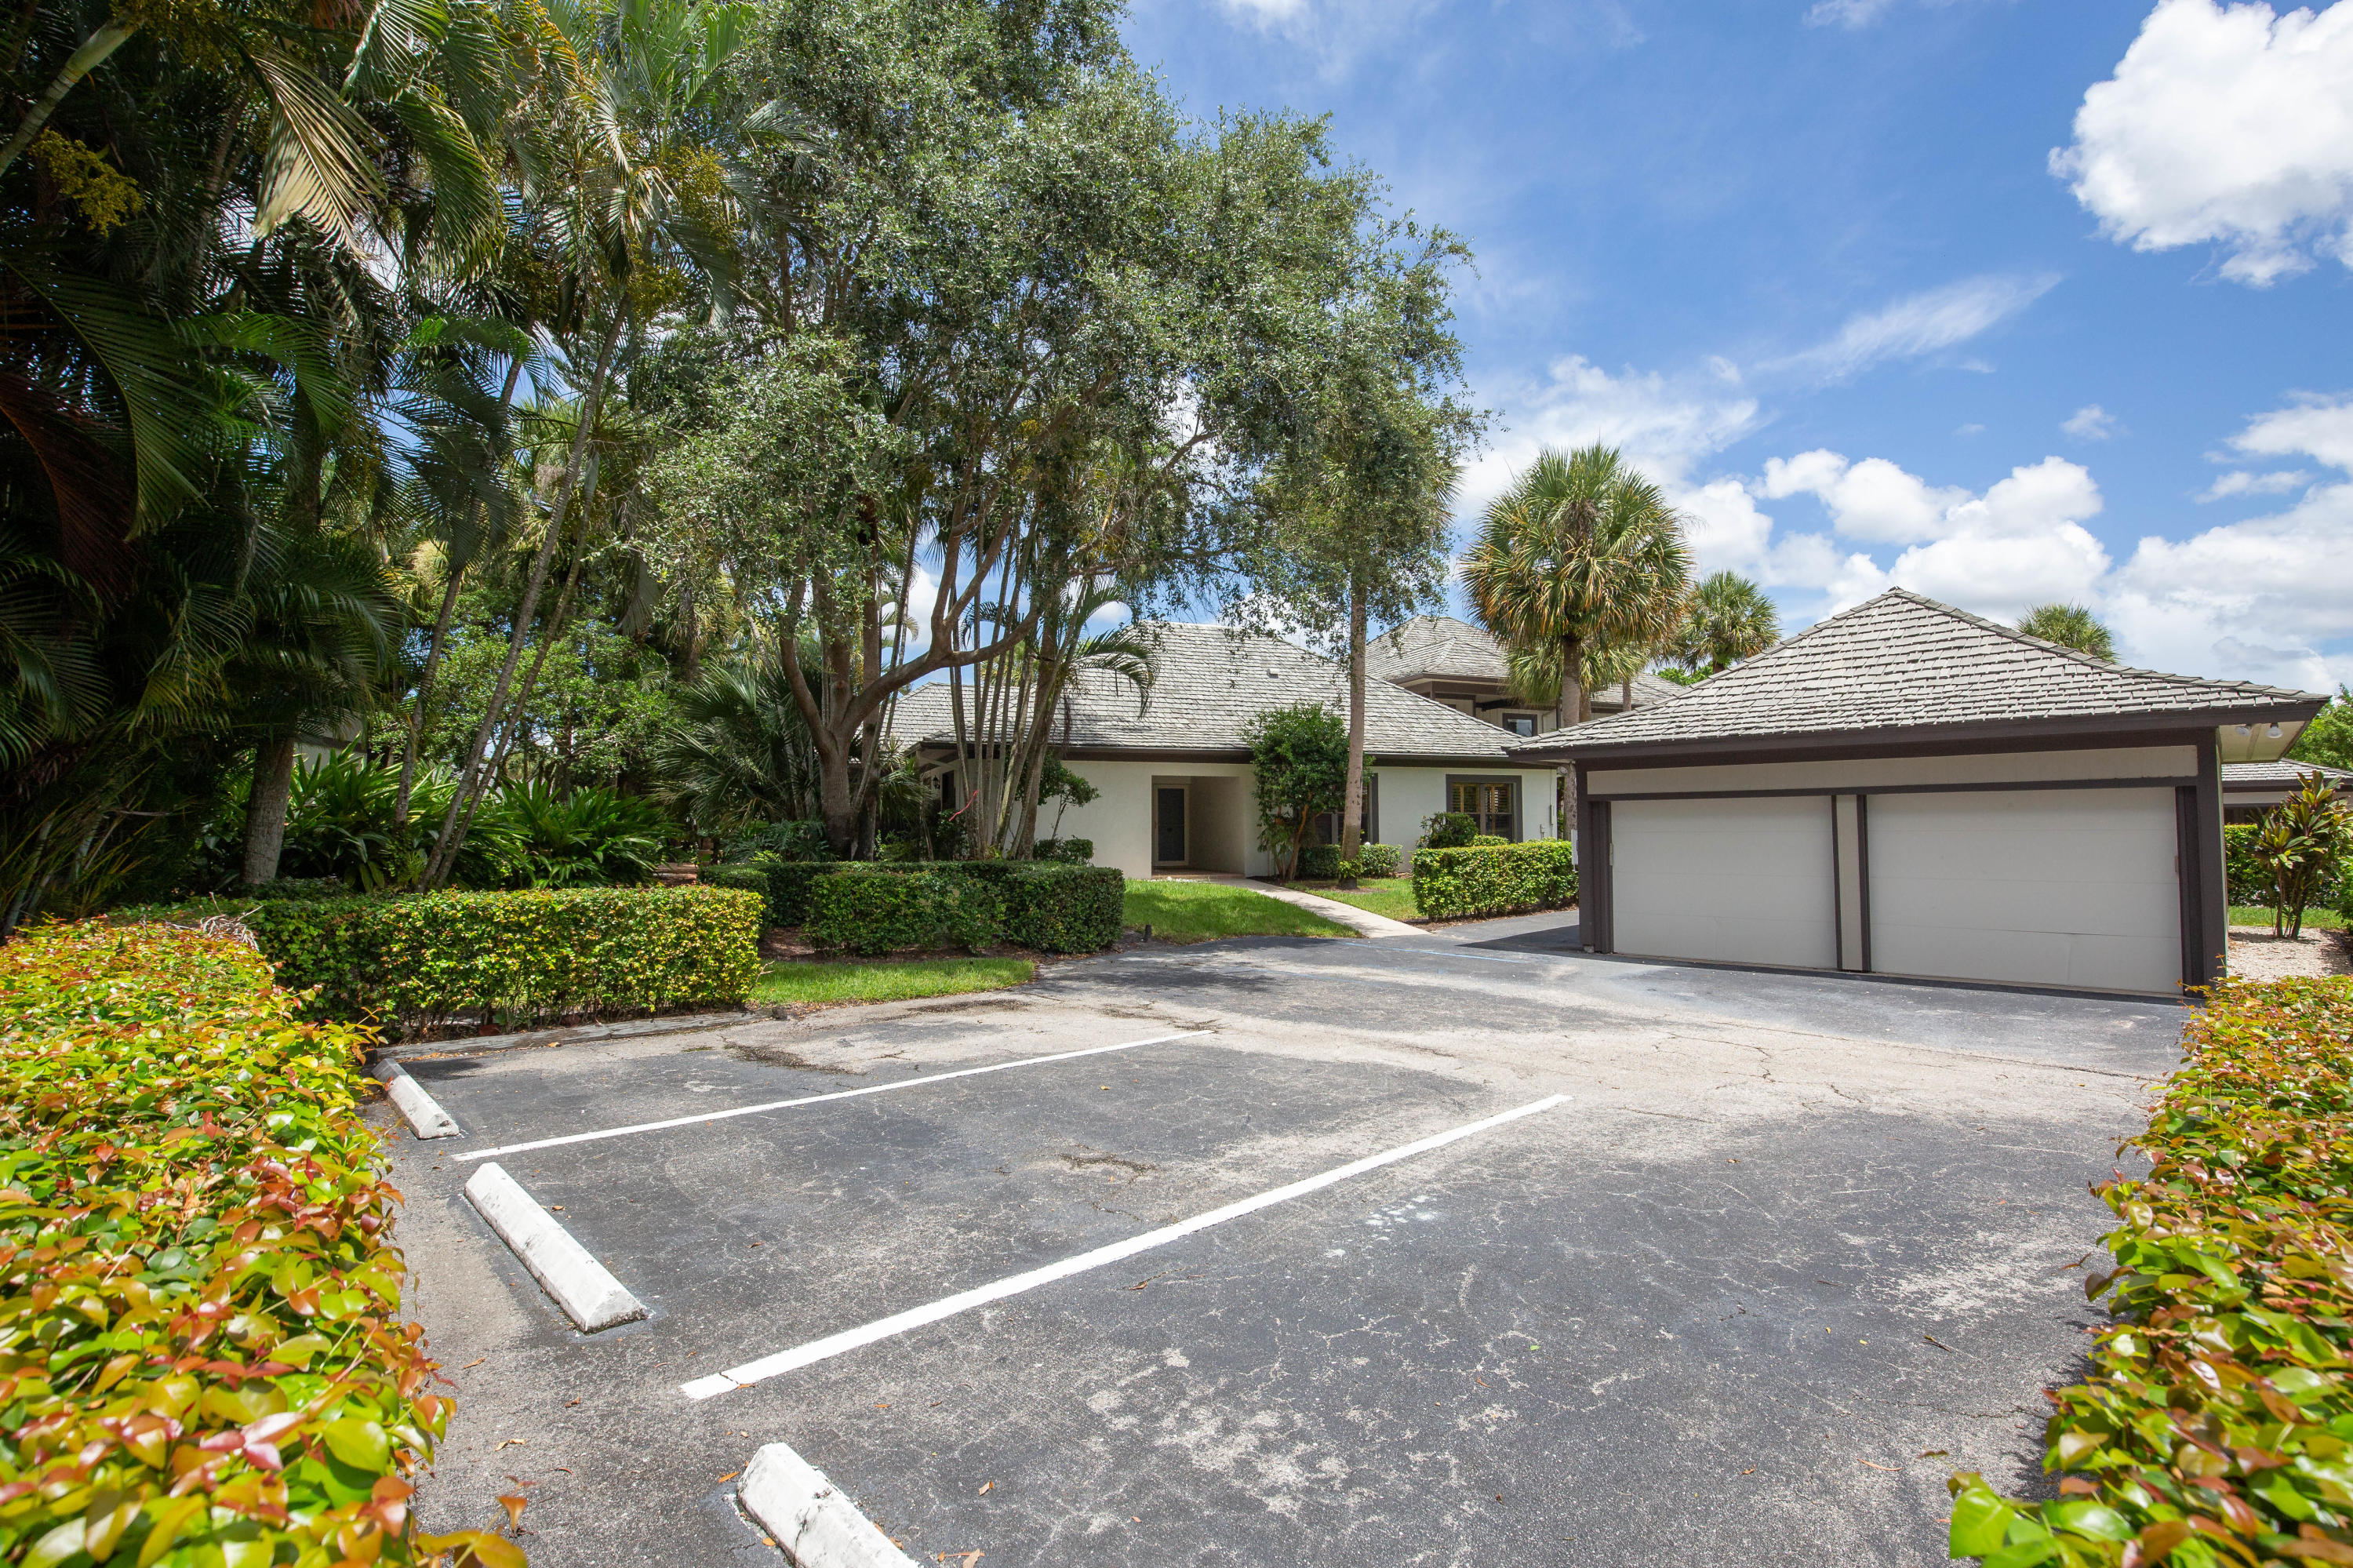 13230 Polo Club Road, Wellington, Florida 33414, 3 Bedrooms Bedrooms, ,3.2 BathroomsBathrooms,Condo/Coop,For Sale,Polo Club,1,RX-10640430